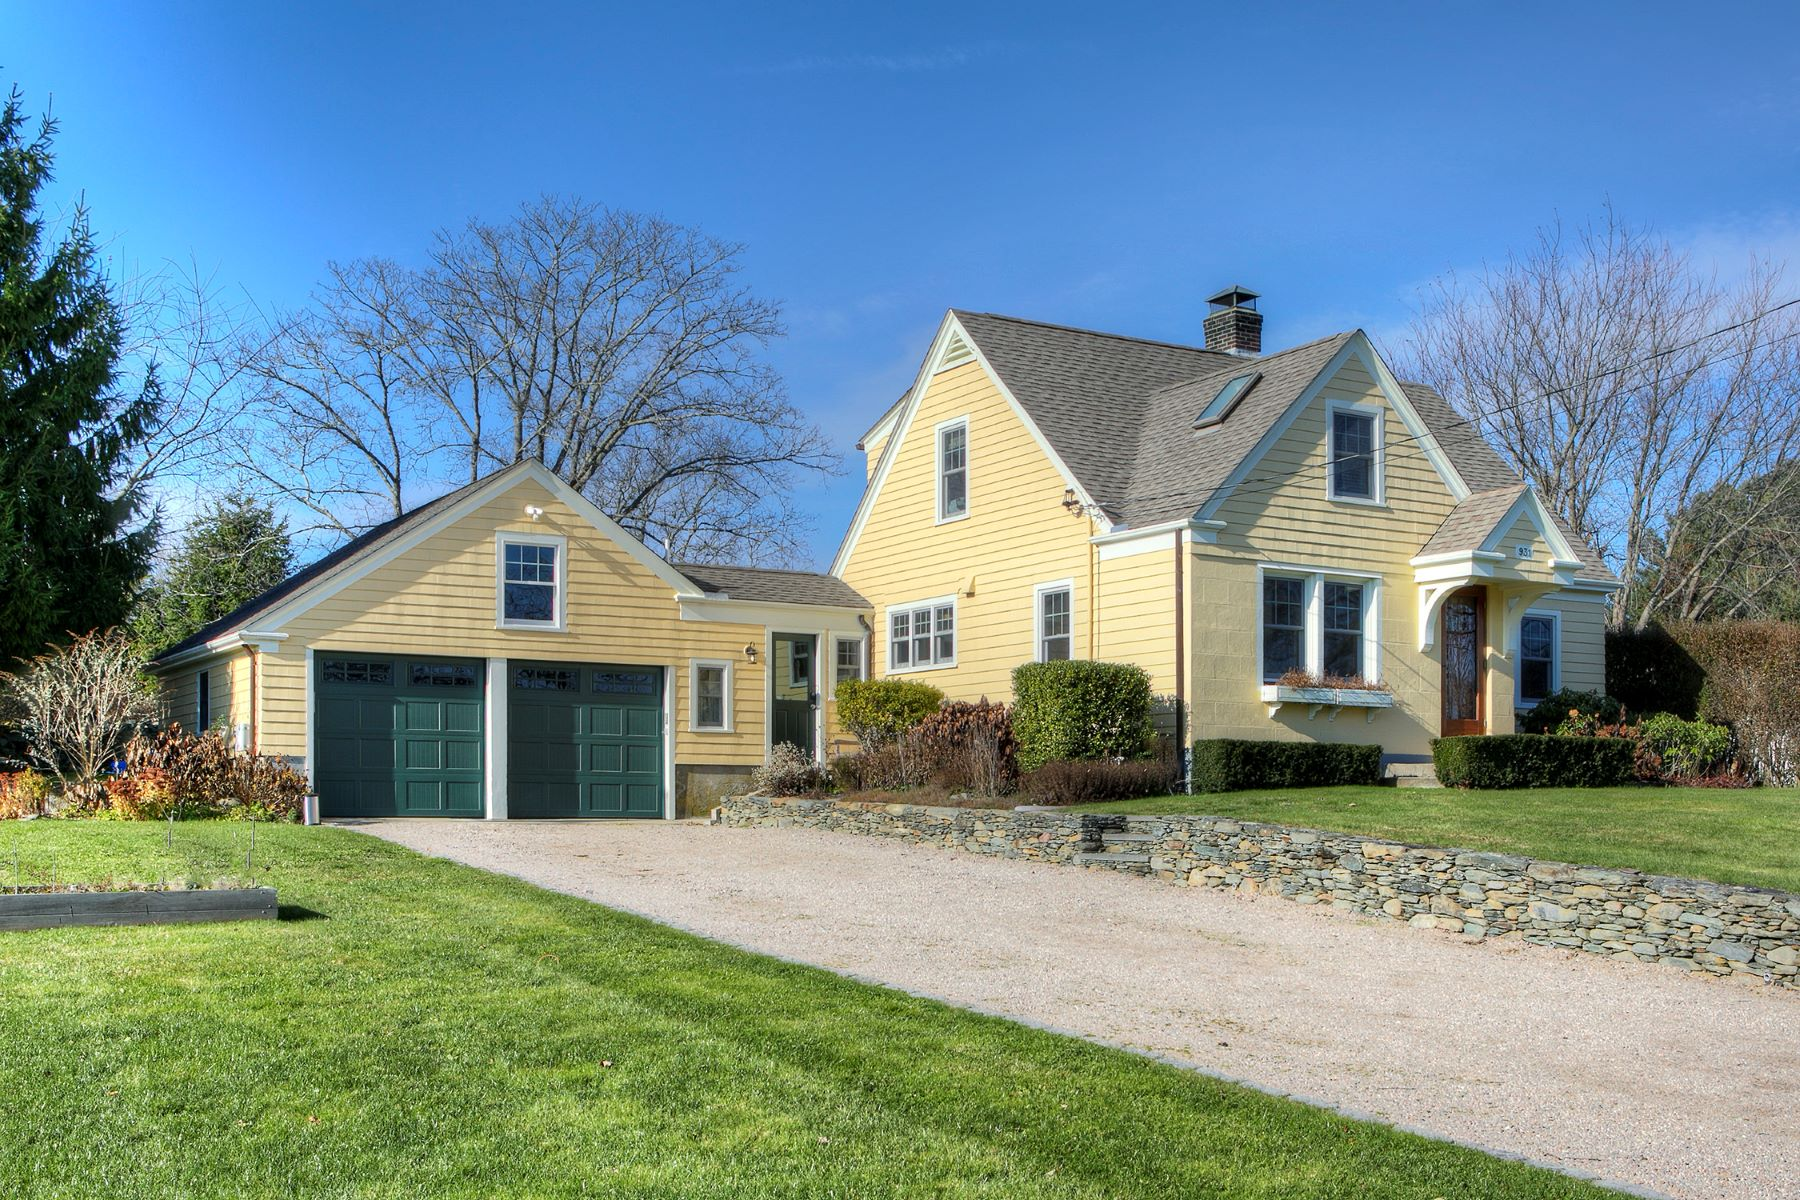 Single Family Homes for Sale at Pristine Cottage 931 Wapping Road Portsmouth, Rhode Island 02871 United States